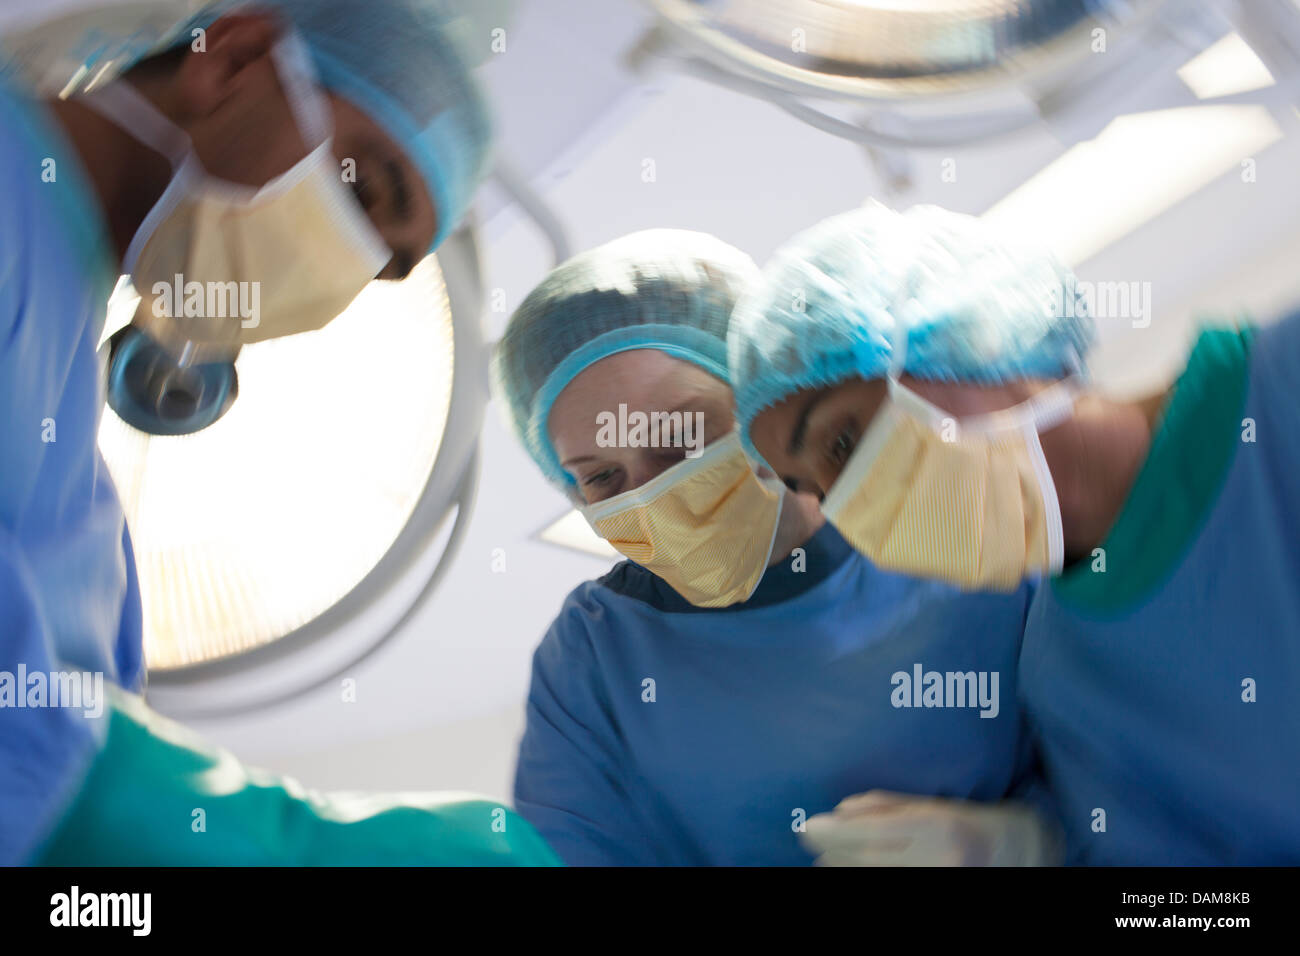 Surgeons bent over patient in operating room - Stock Image